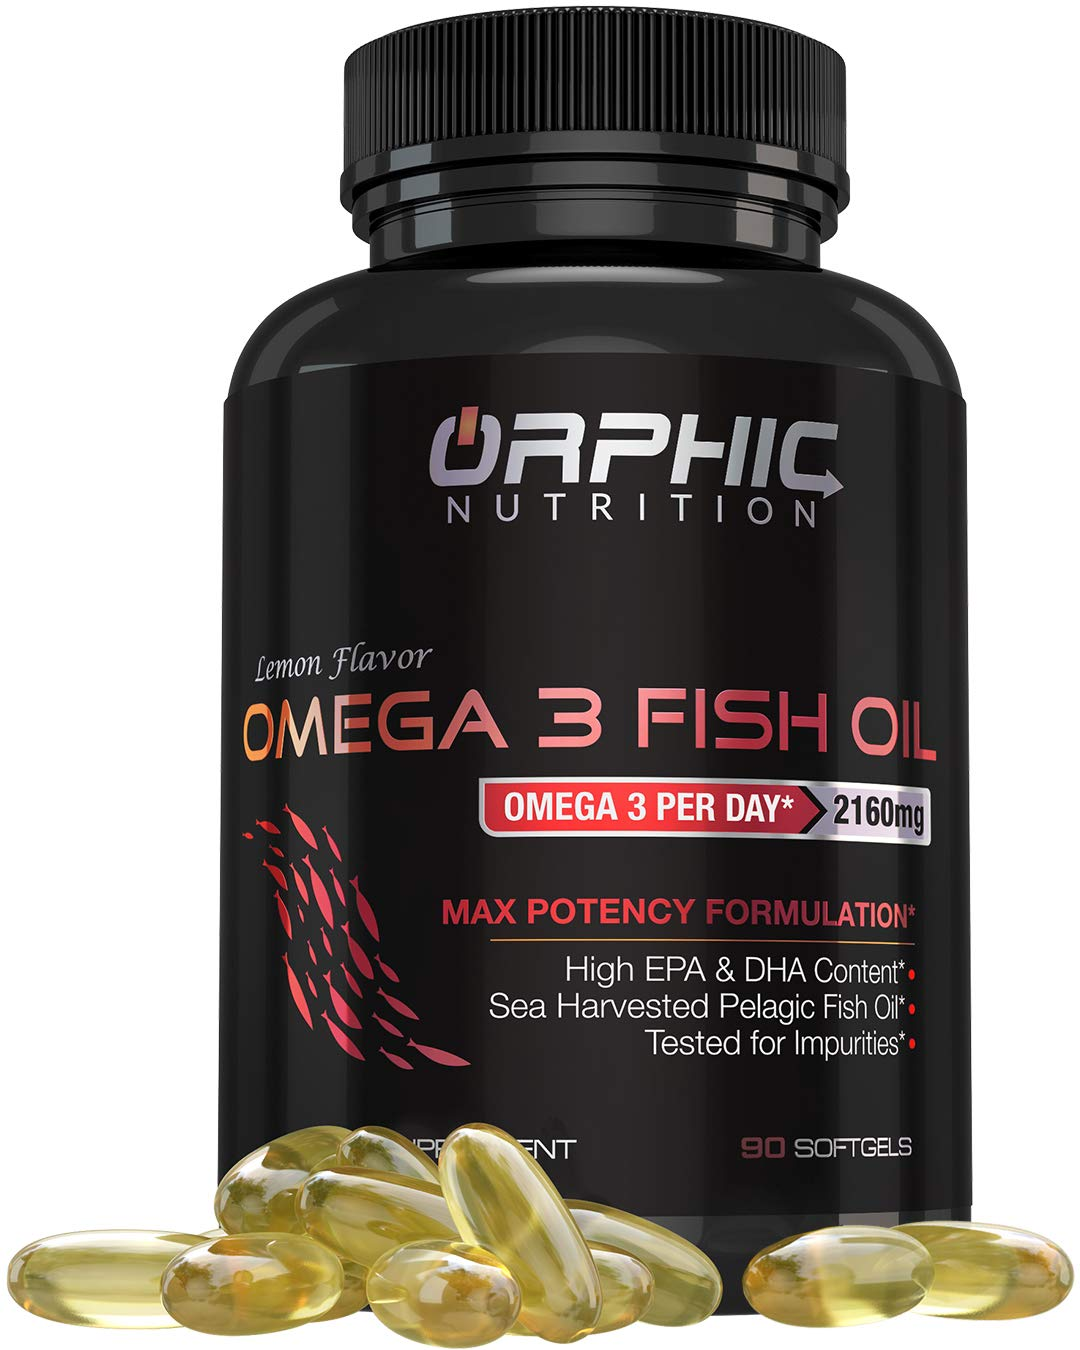 Omega 3 Fish Oil Max Potency Burpless Capsules - 3,600mg Fish Oil + 2,160mg Omega 3 + 1,296mg EPA + 864mg DHA - Best Essential Fatty Acids Supplement for Heart, Eye, Joint & Brain Health, Cholesterol by Orphic Nutrition